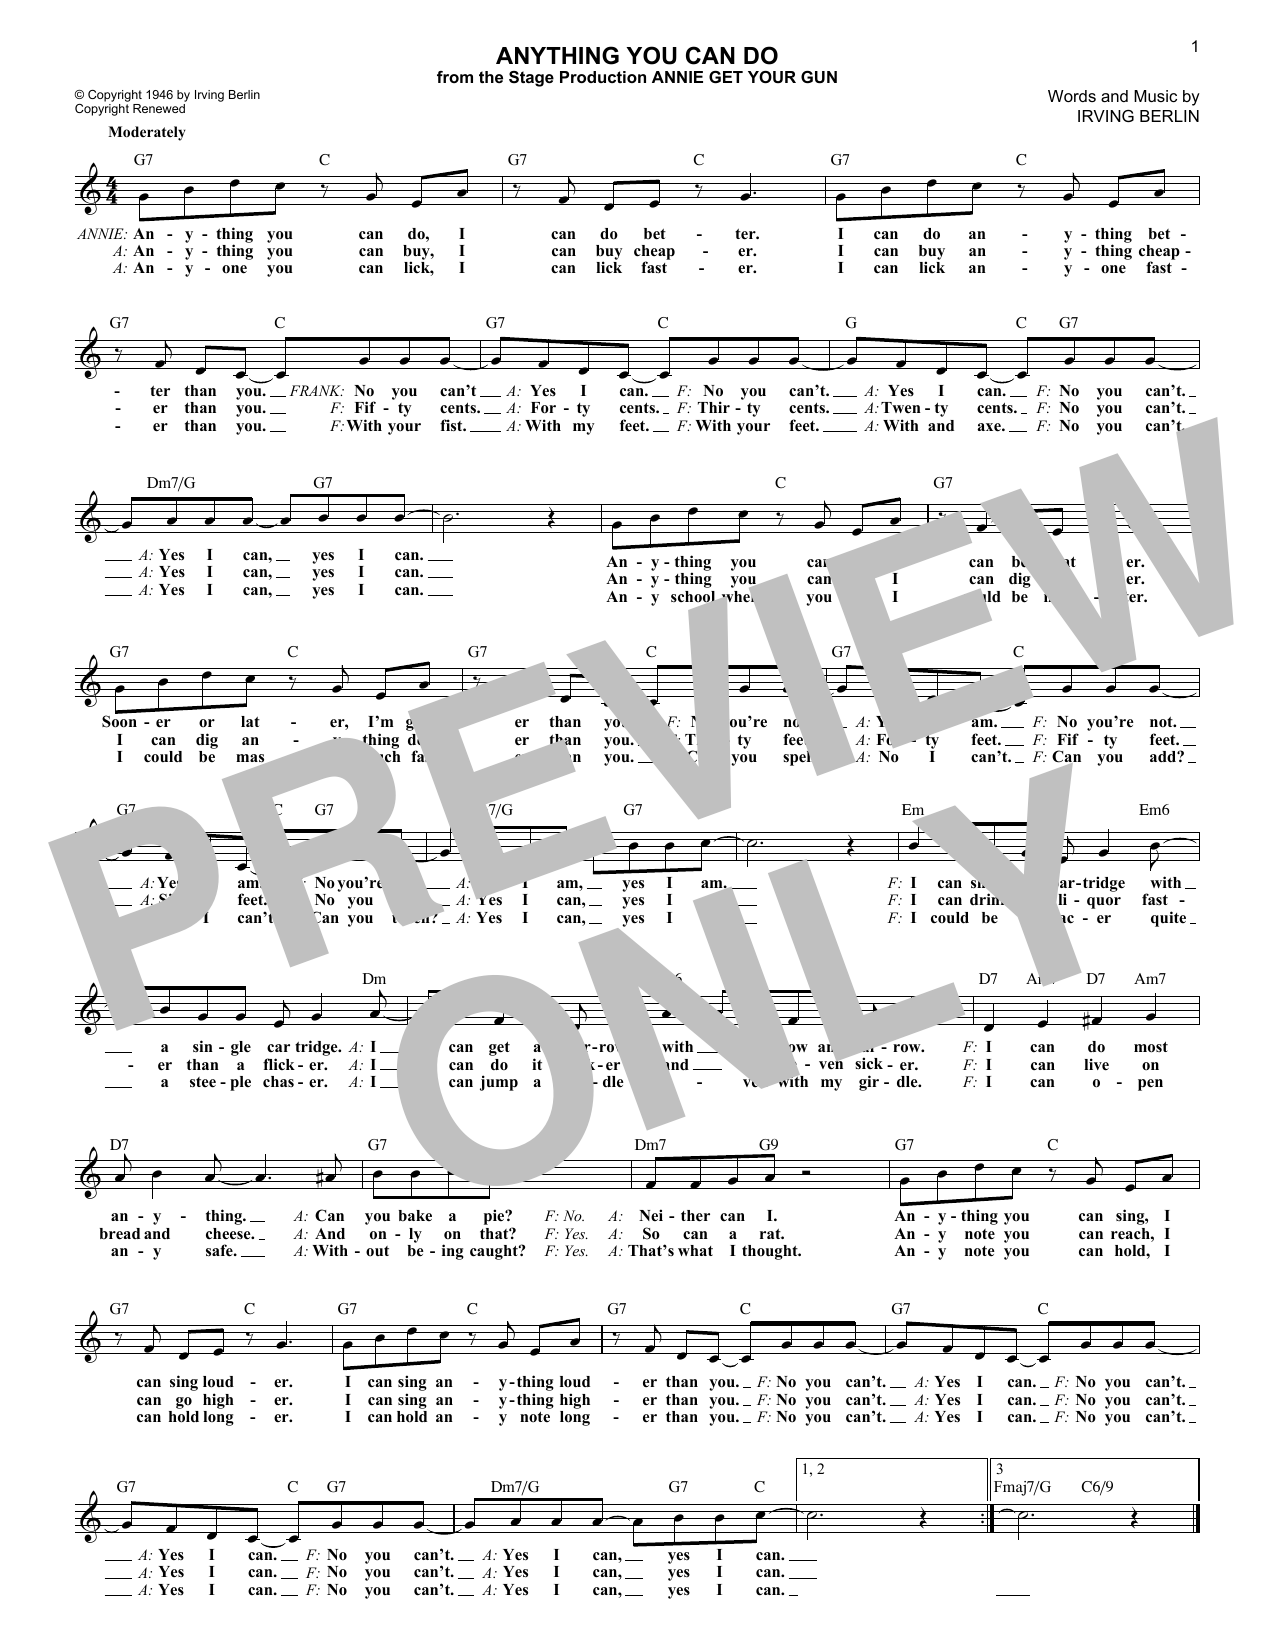 Irving Berlin Anything You Can Do sheet music notes and chords. Download Printable PDF.